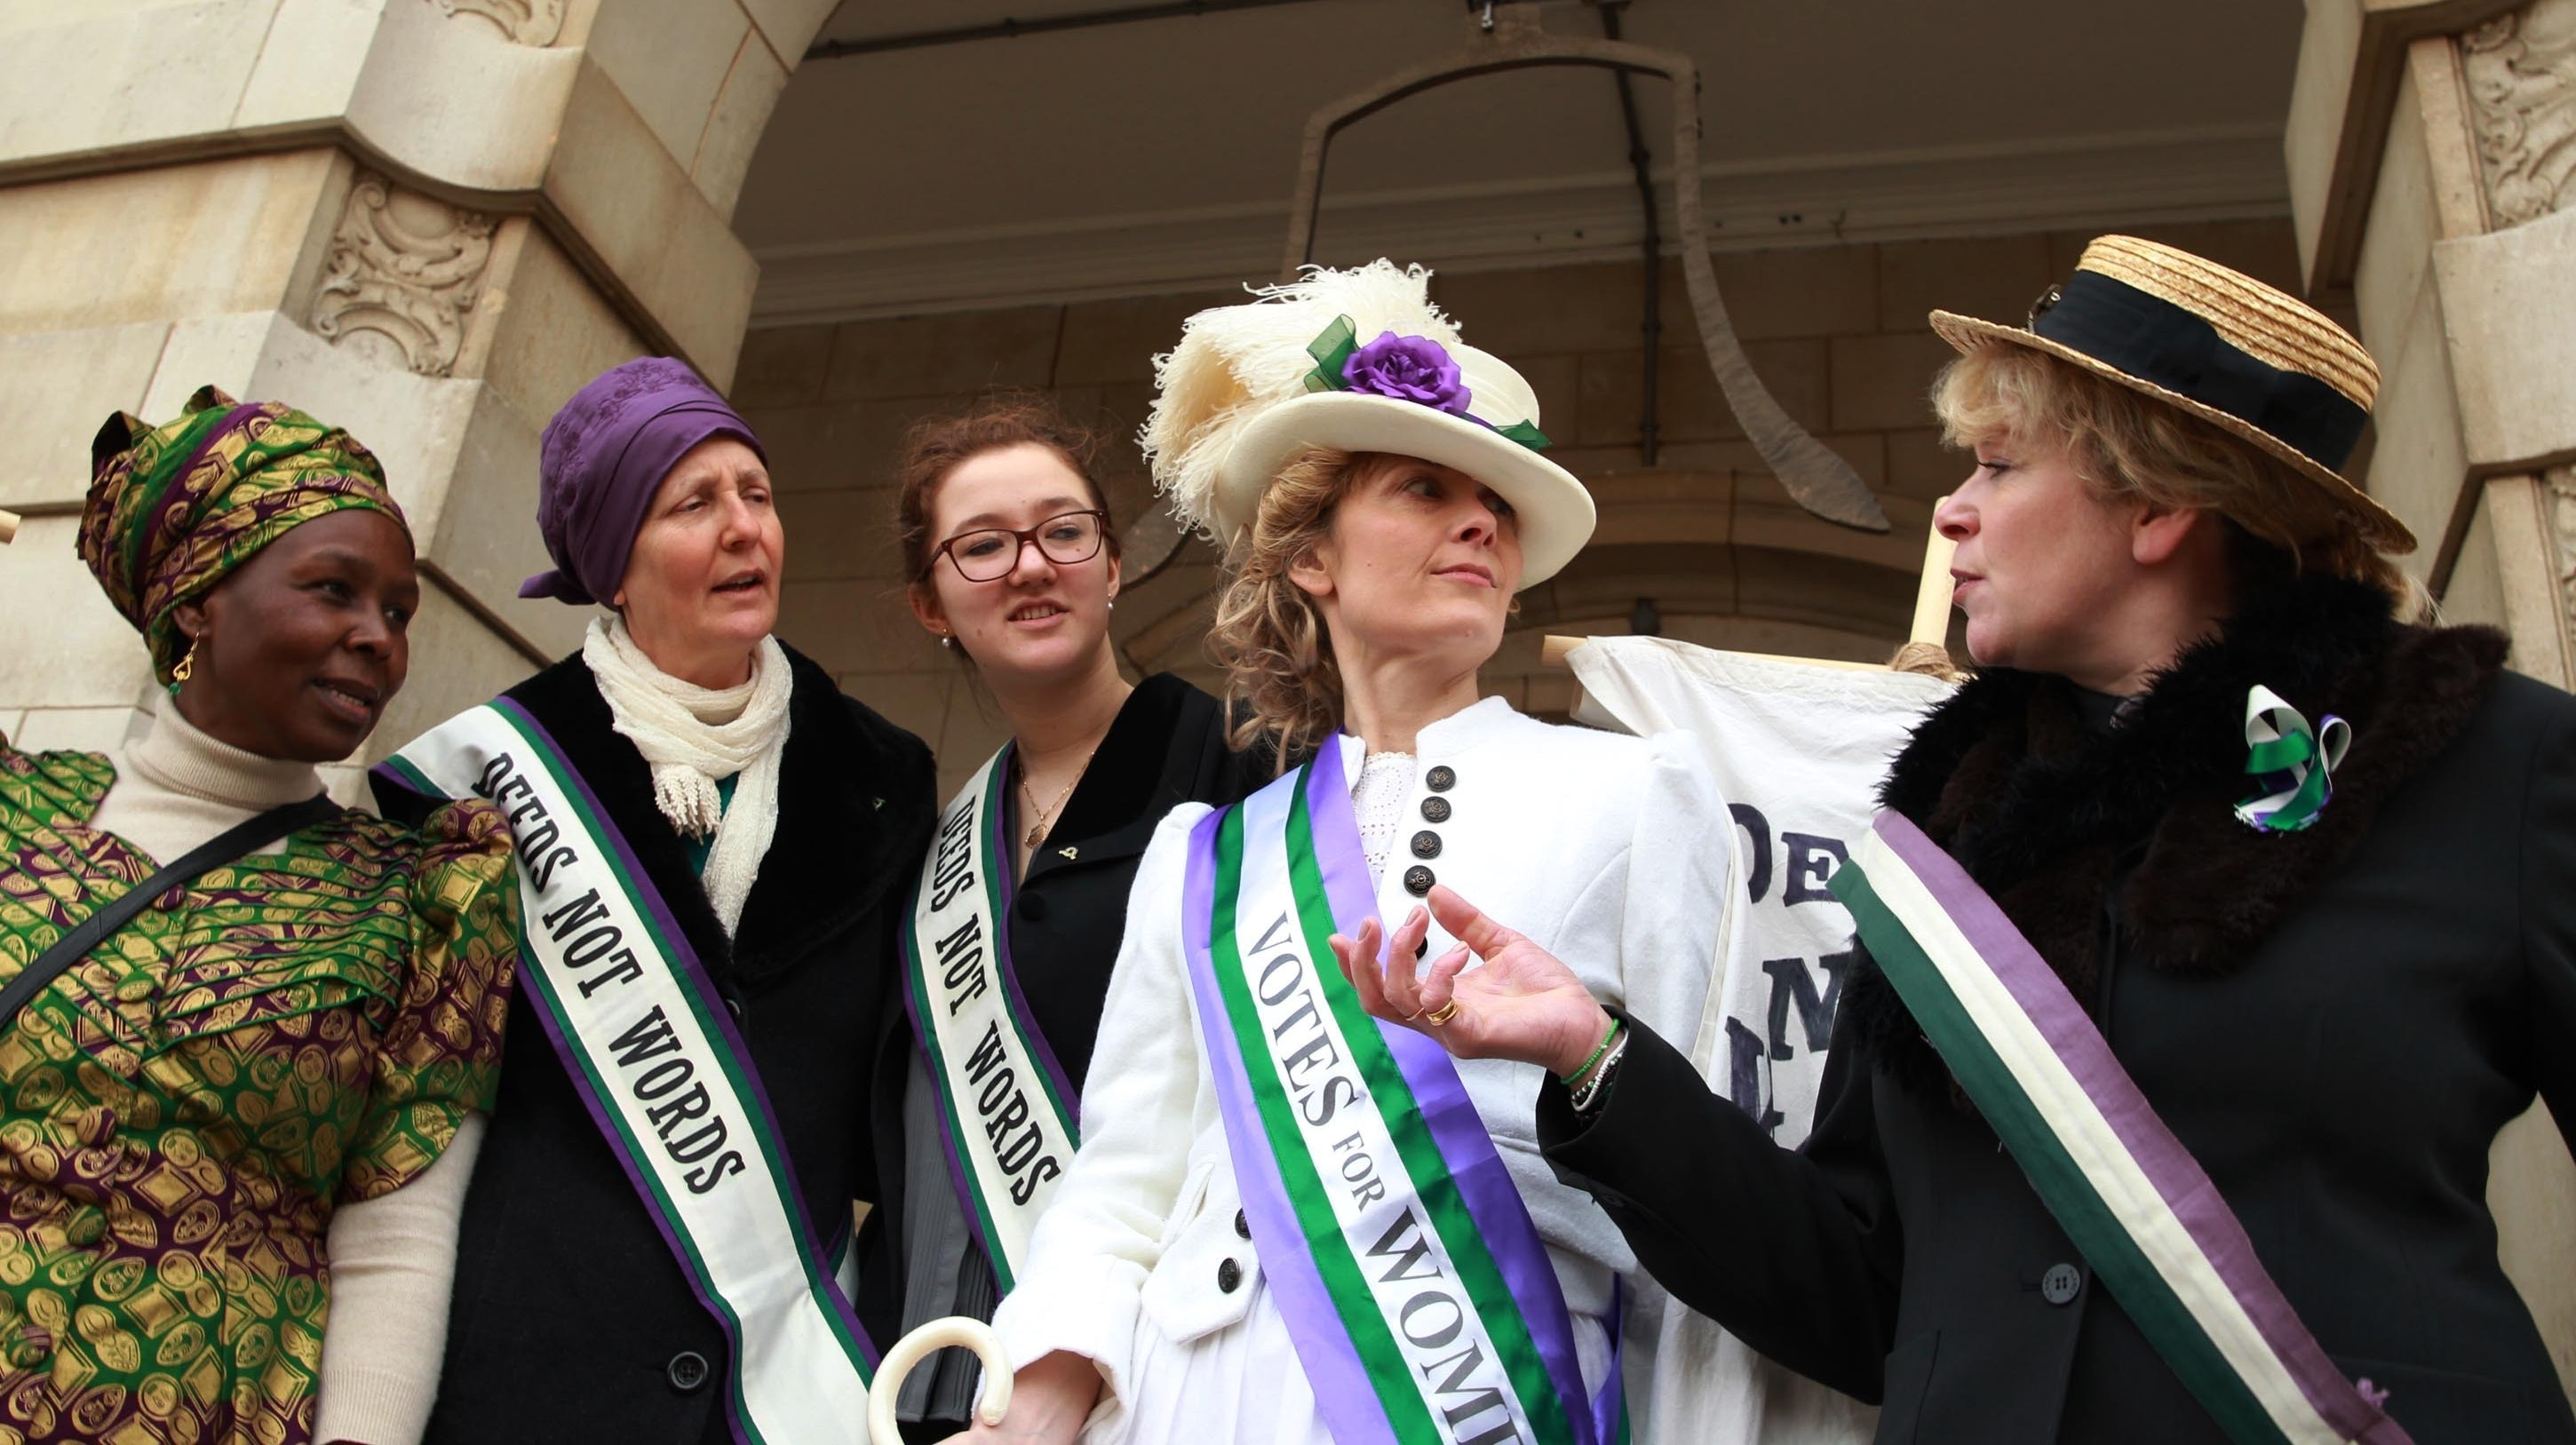 Vote for the women who still channel the Suffragette Spirit to make changes in Leeds